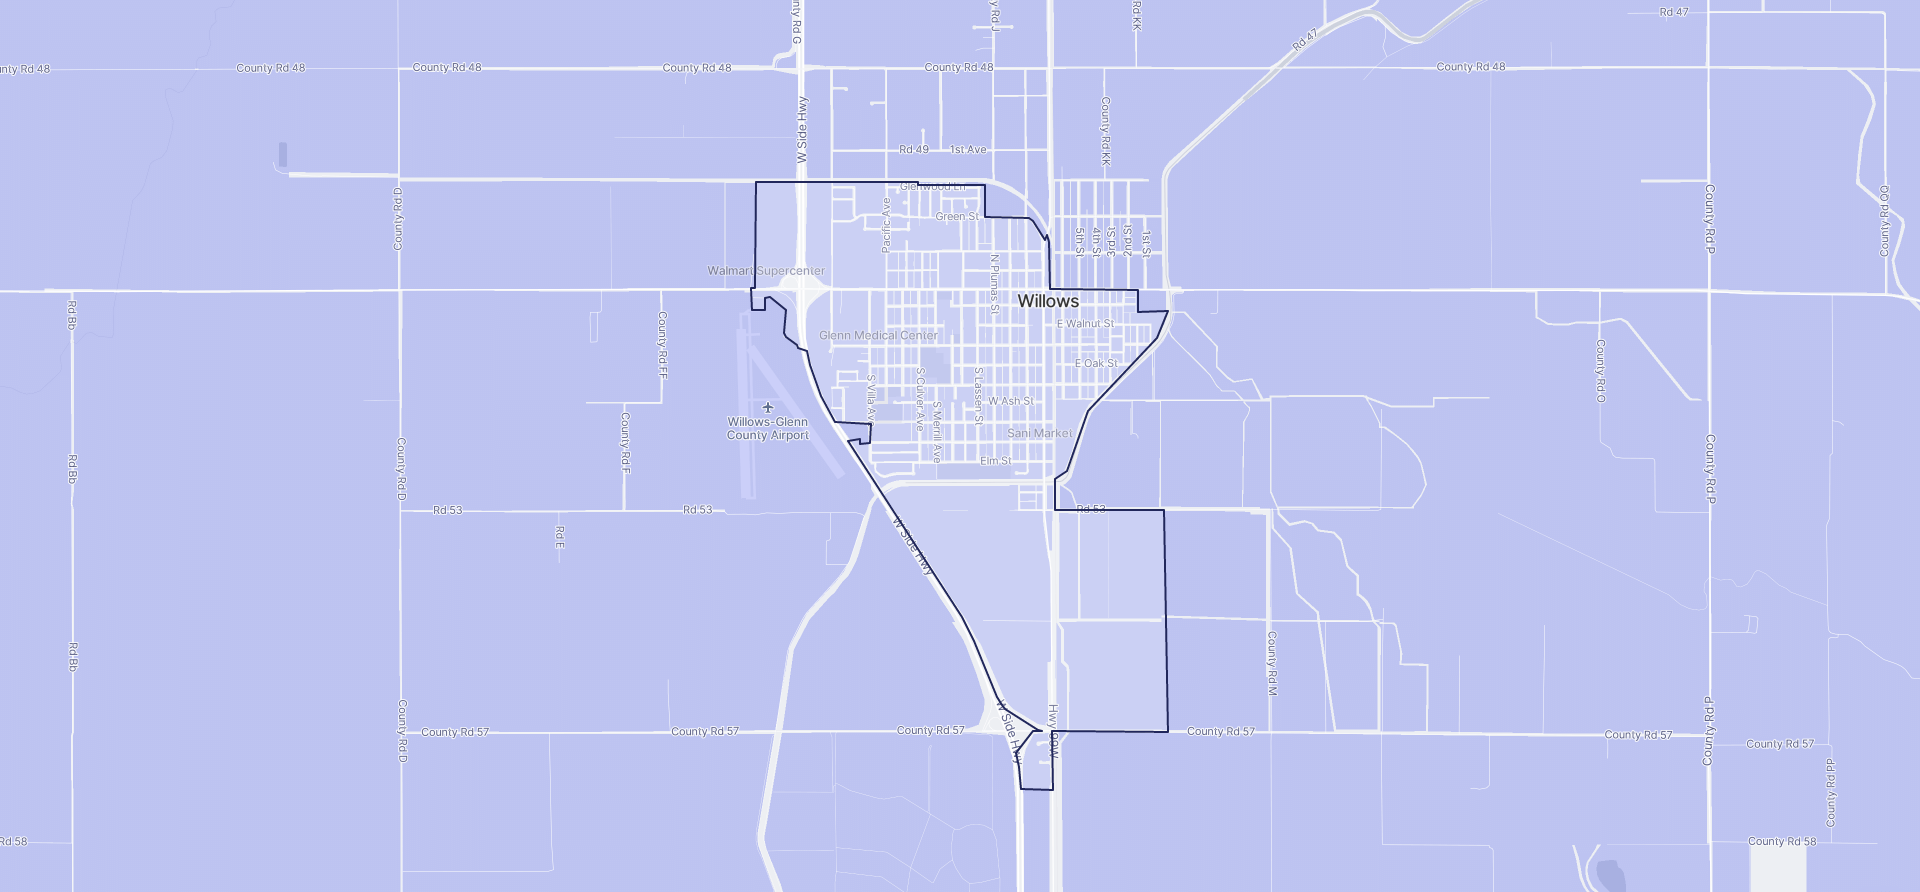 Image of Willows boundaries on a map.